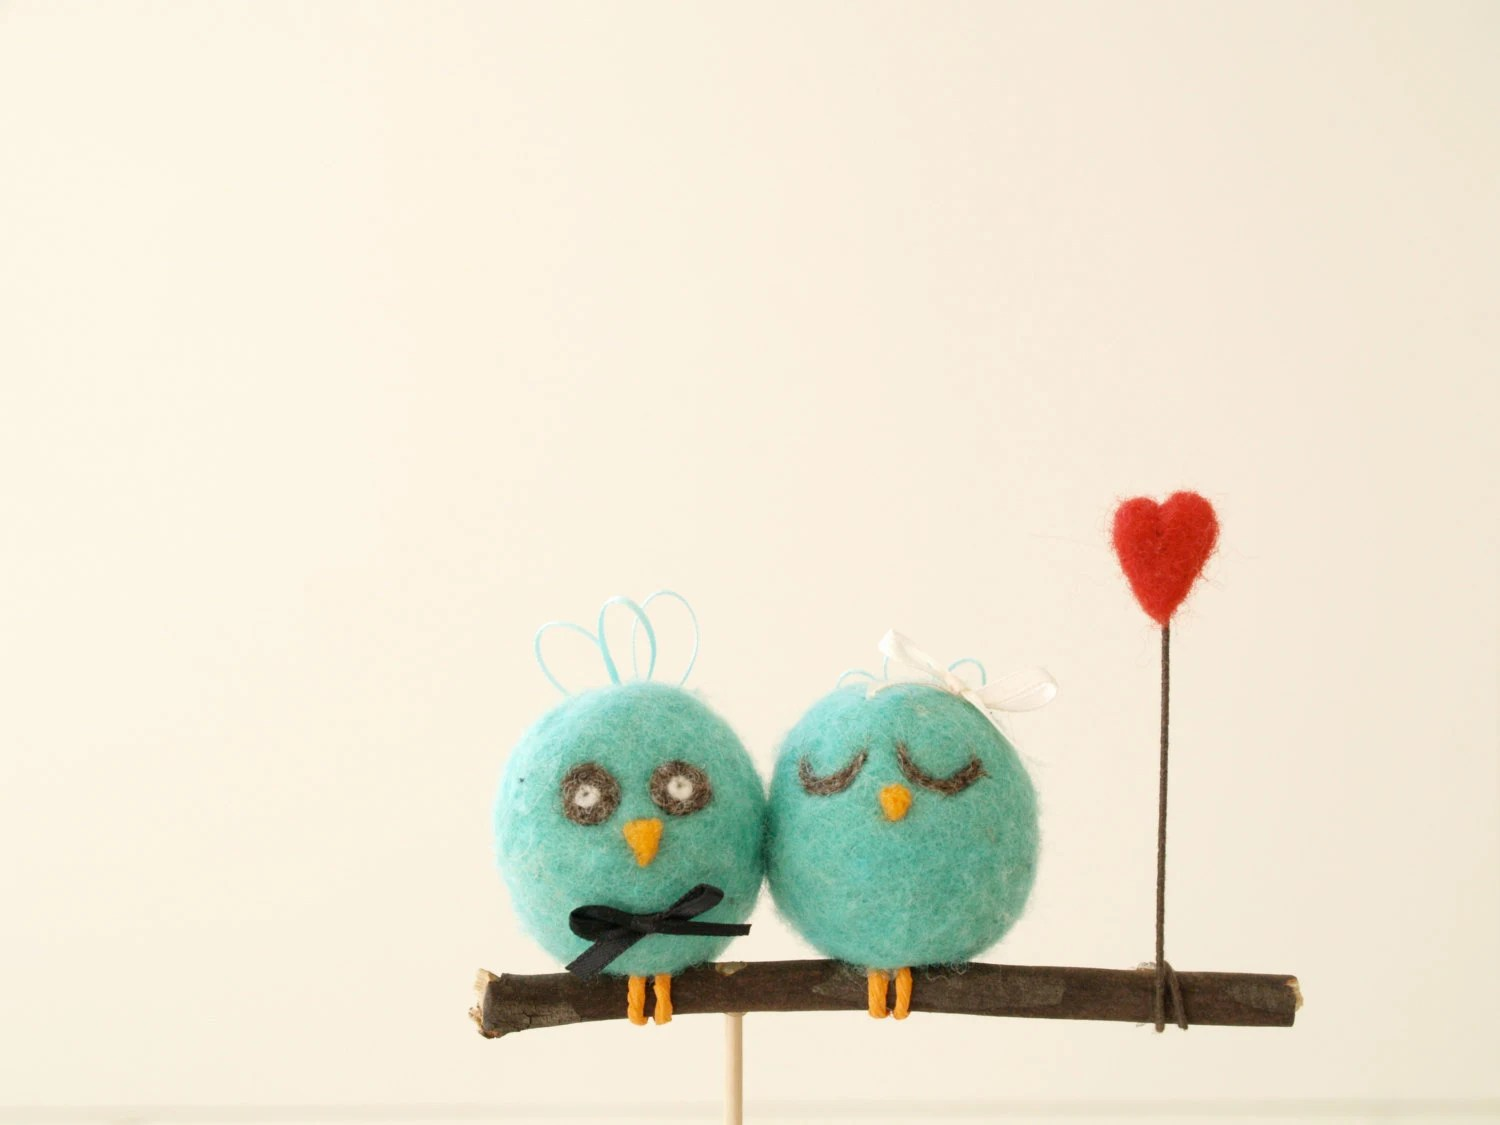 Wedding Cake Topper Love Birds, Robins Egg Bue, Unique Woodland, Needle Felted Bride and Groom, White Wool Cute red Heart, turquoise - FairyfolkWeddings